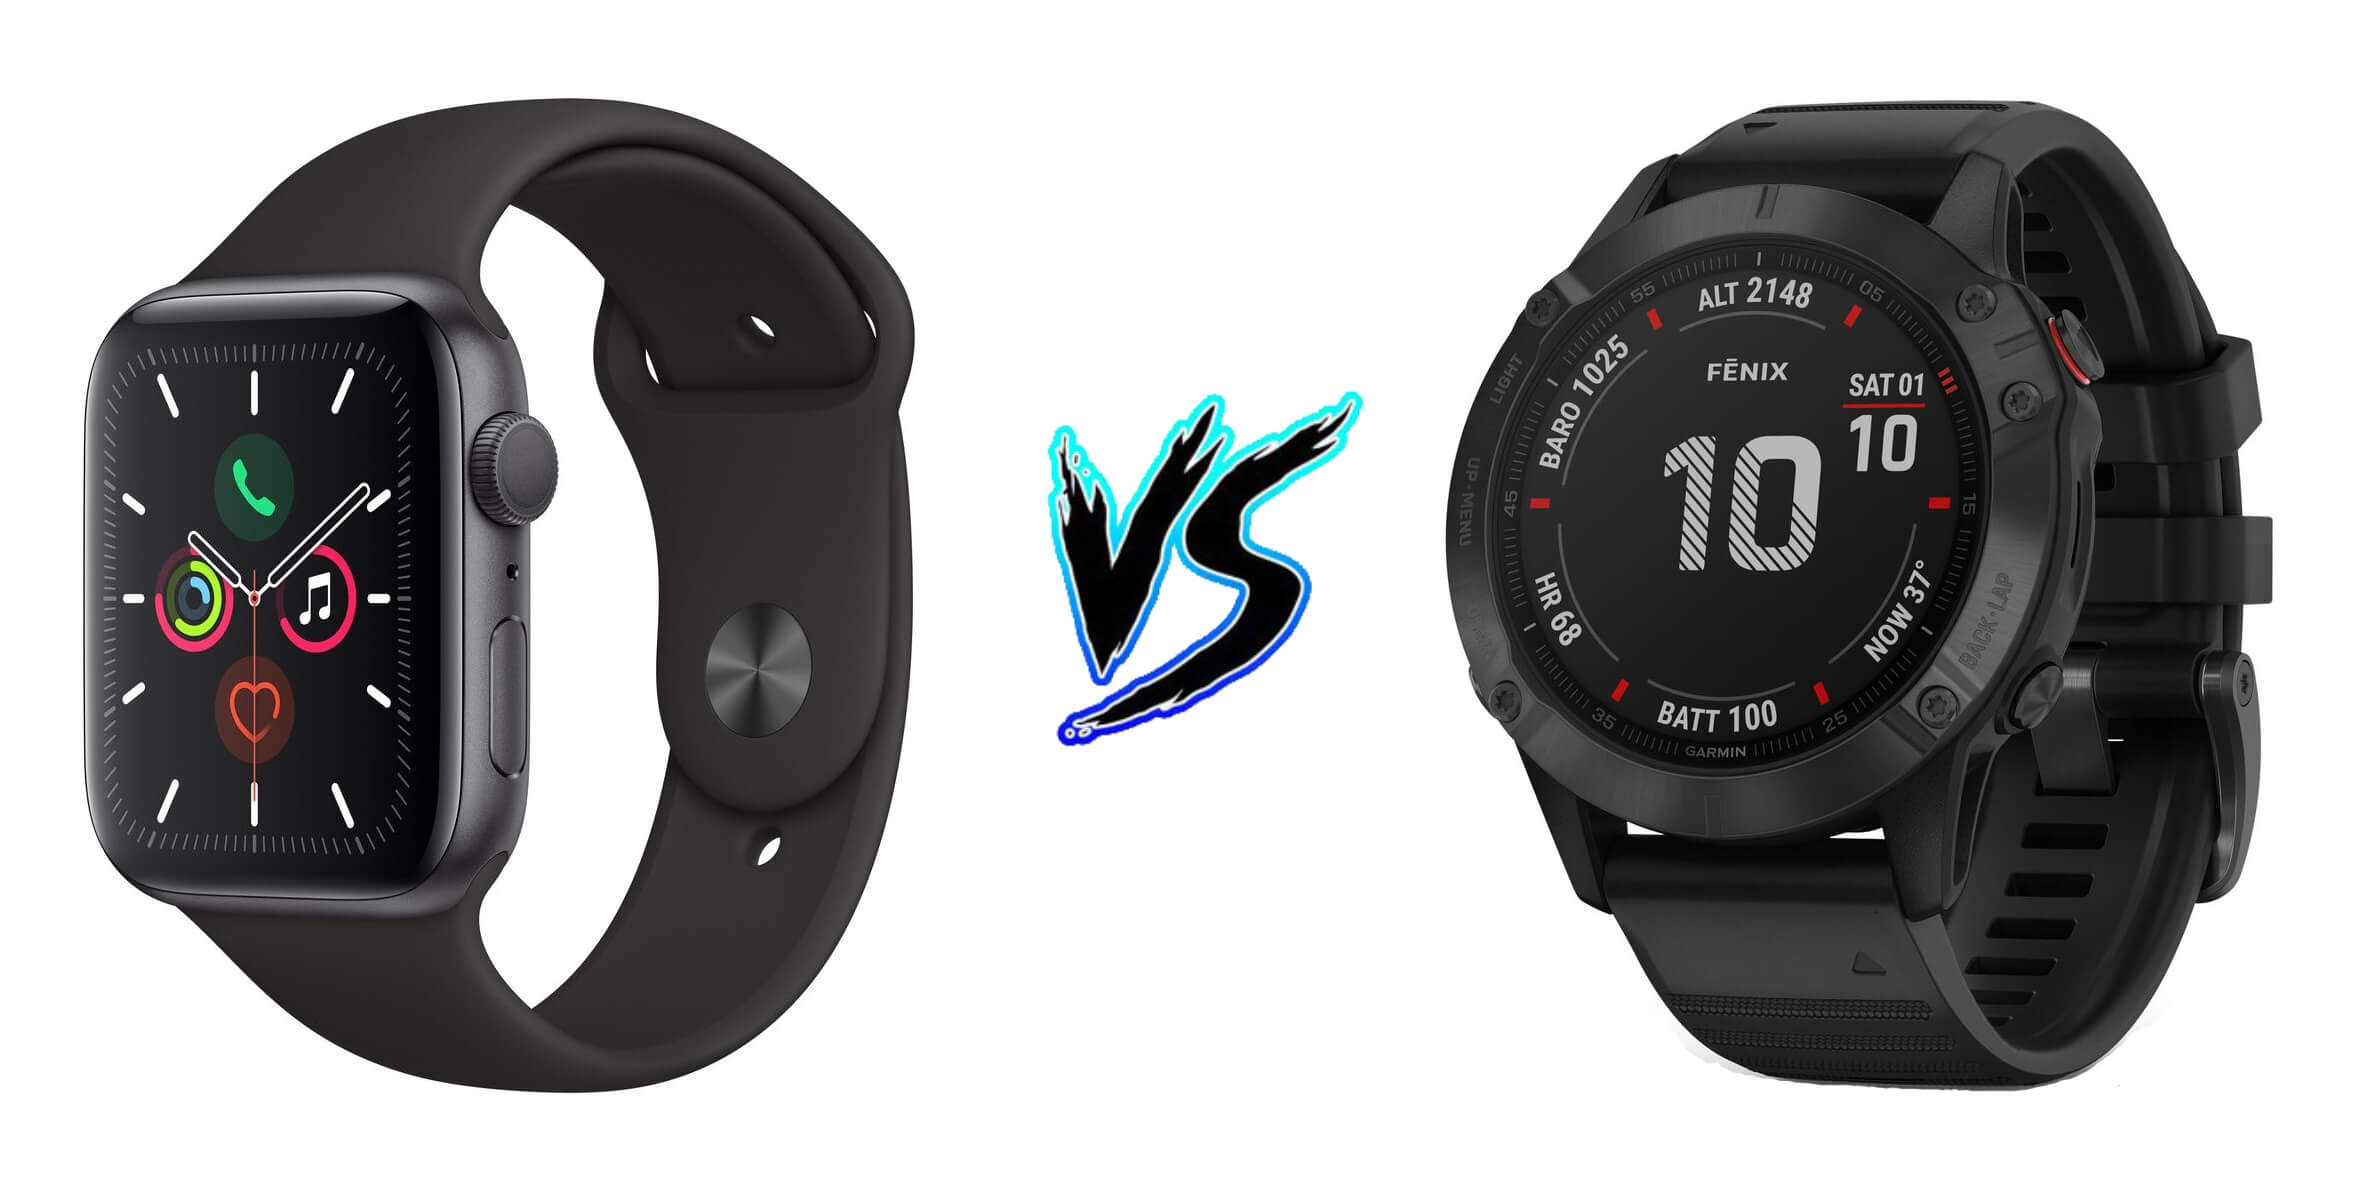 Apple Watch Series 5 vs Garmin Fenix 6